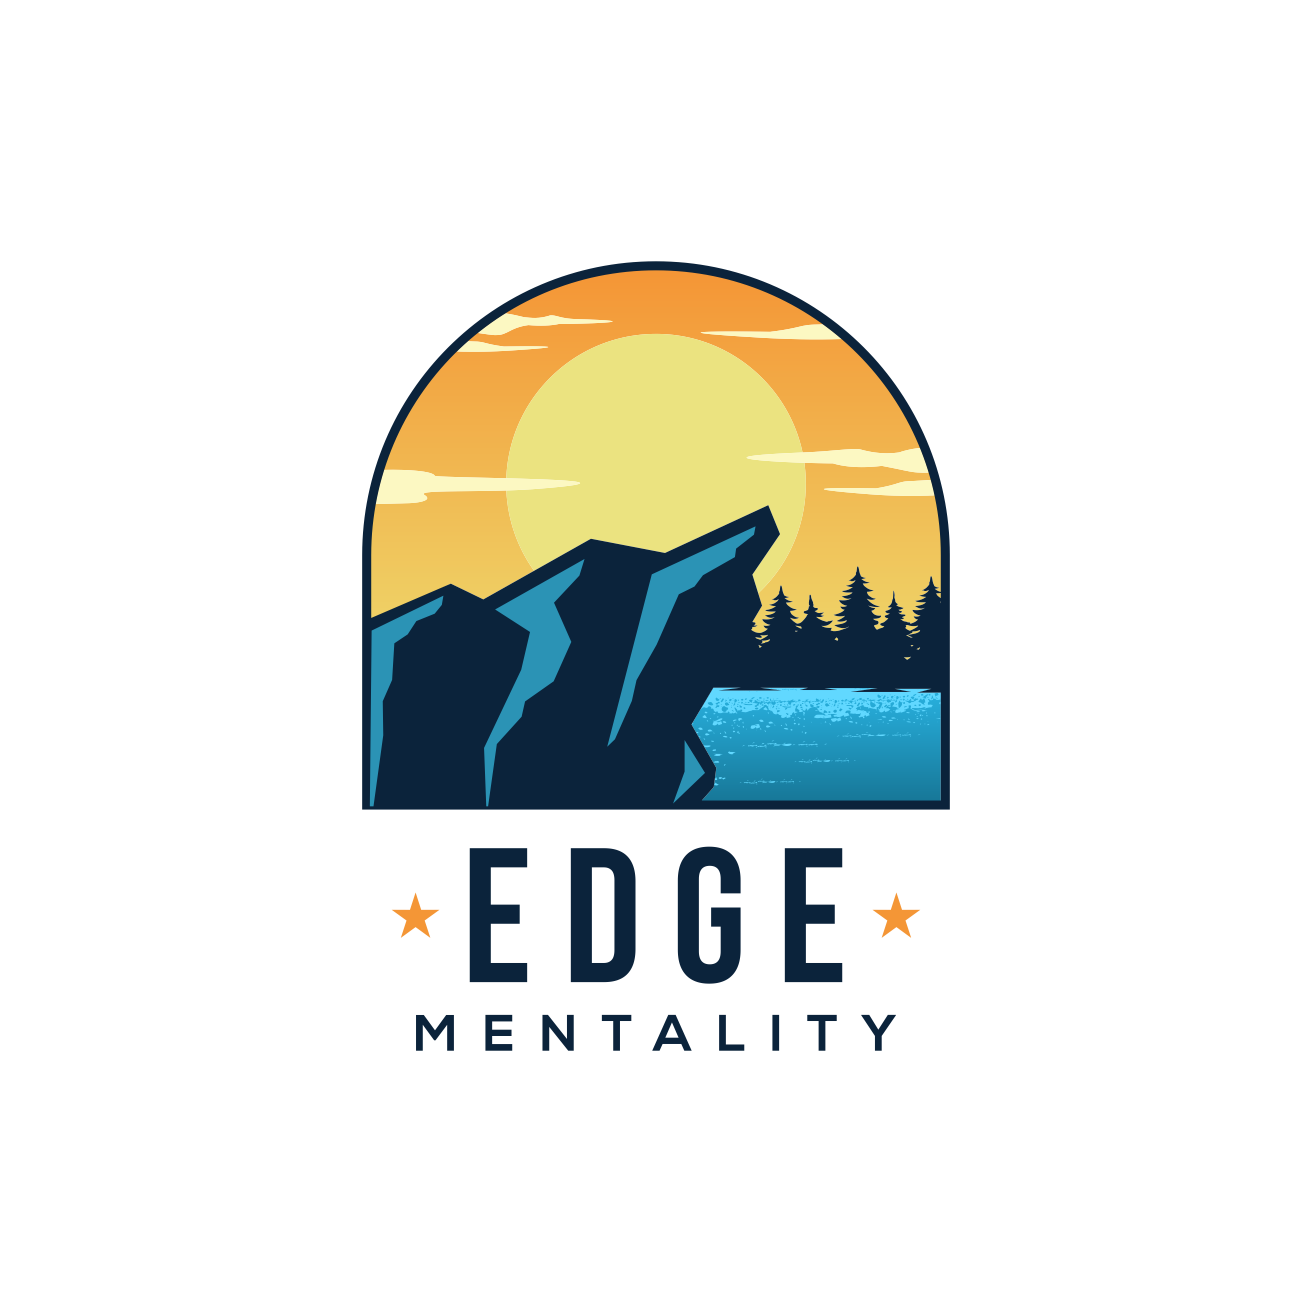 Craftsman style logo for a mental strength program that appeals to elite performers